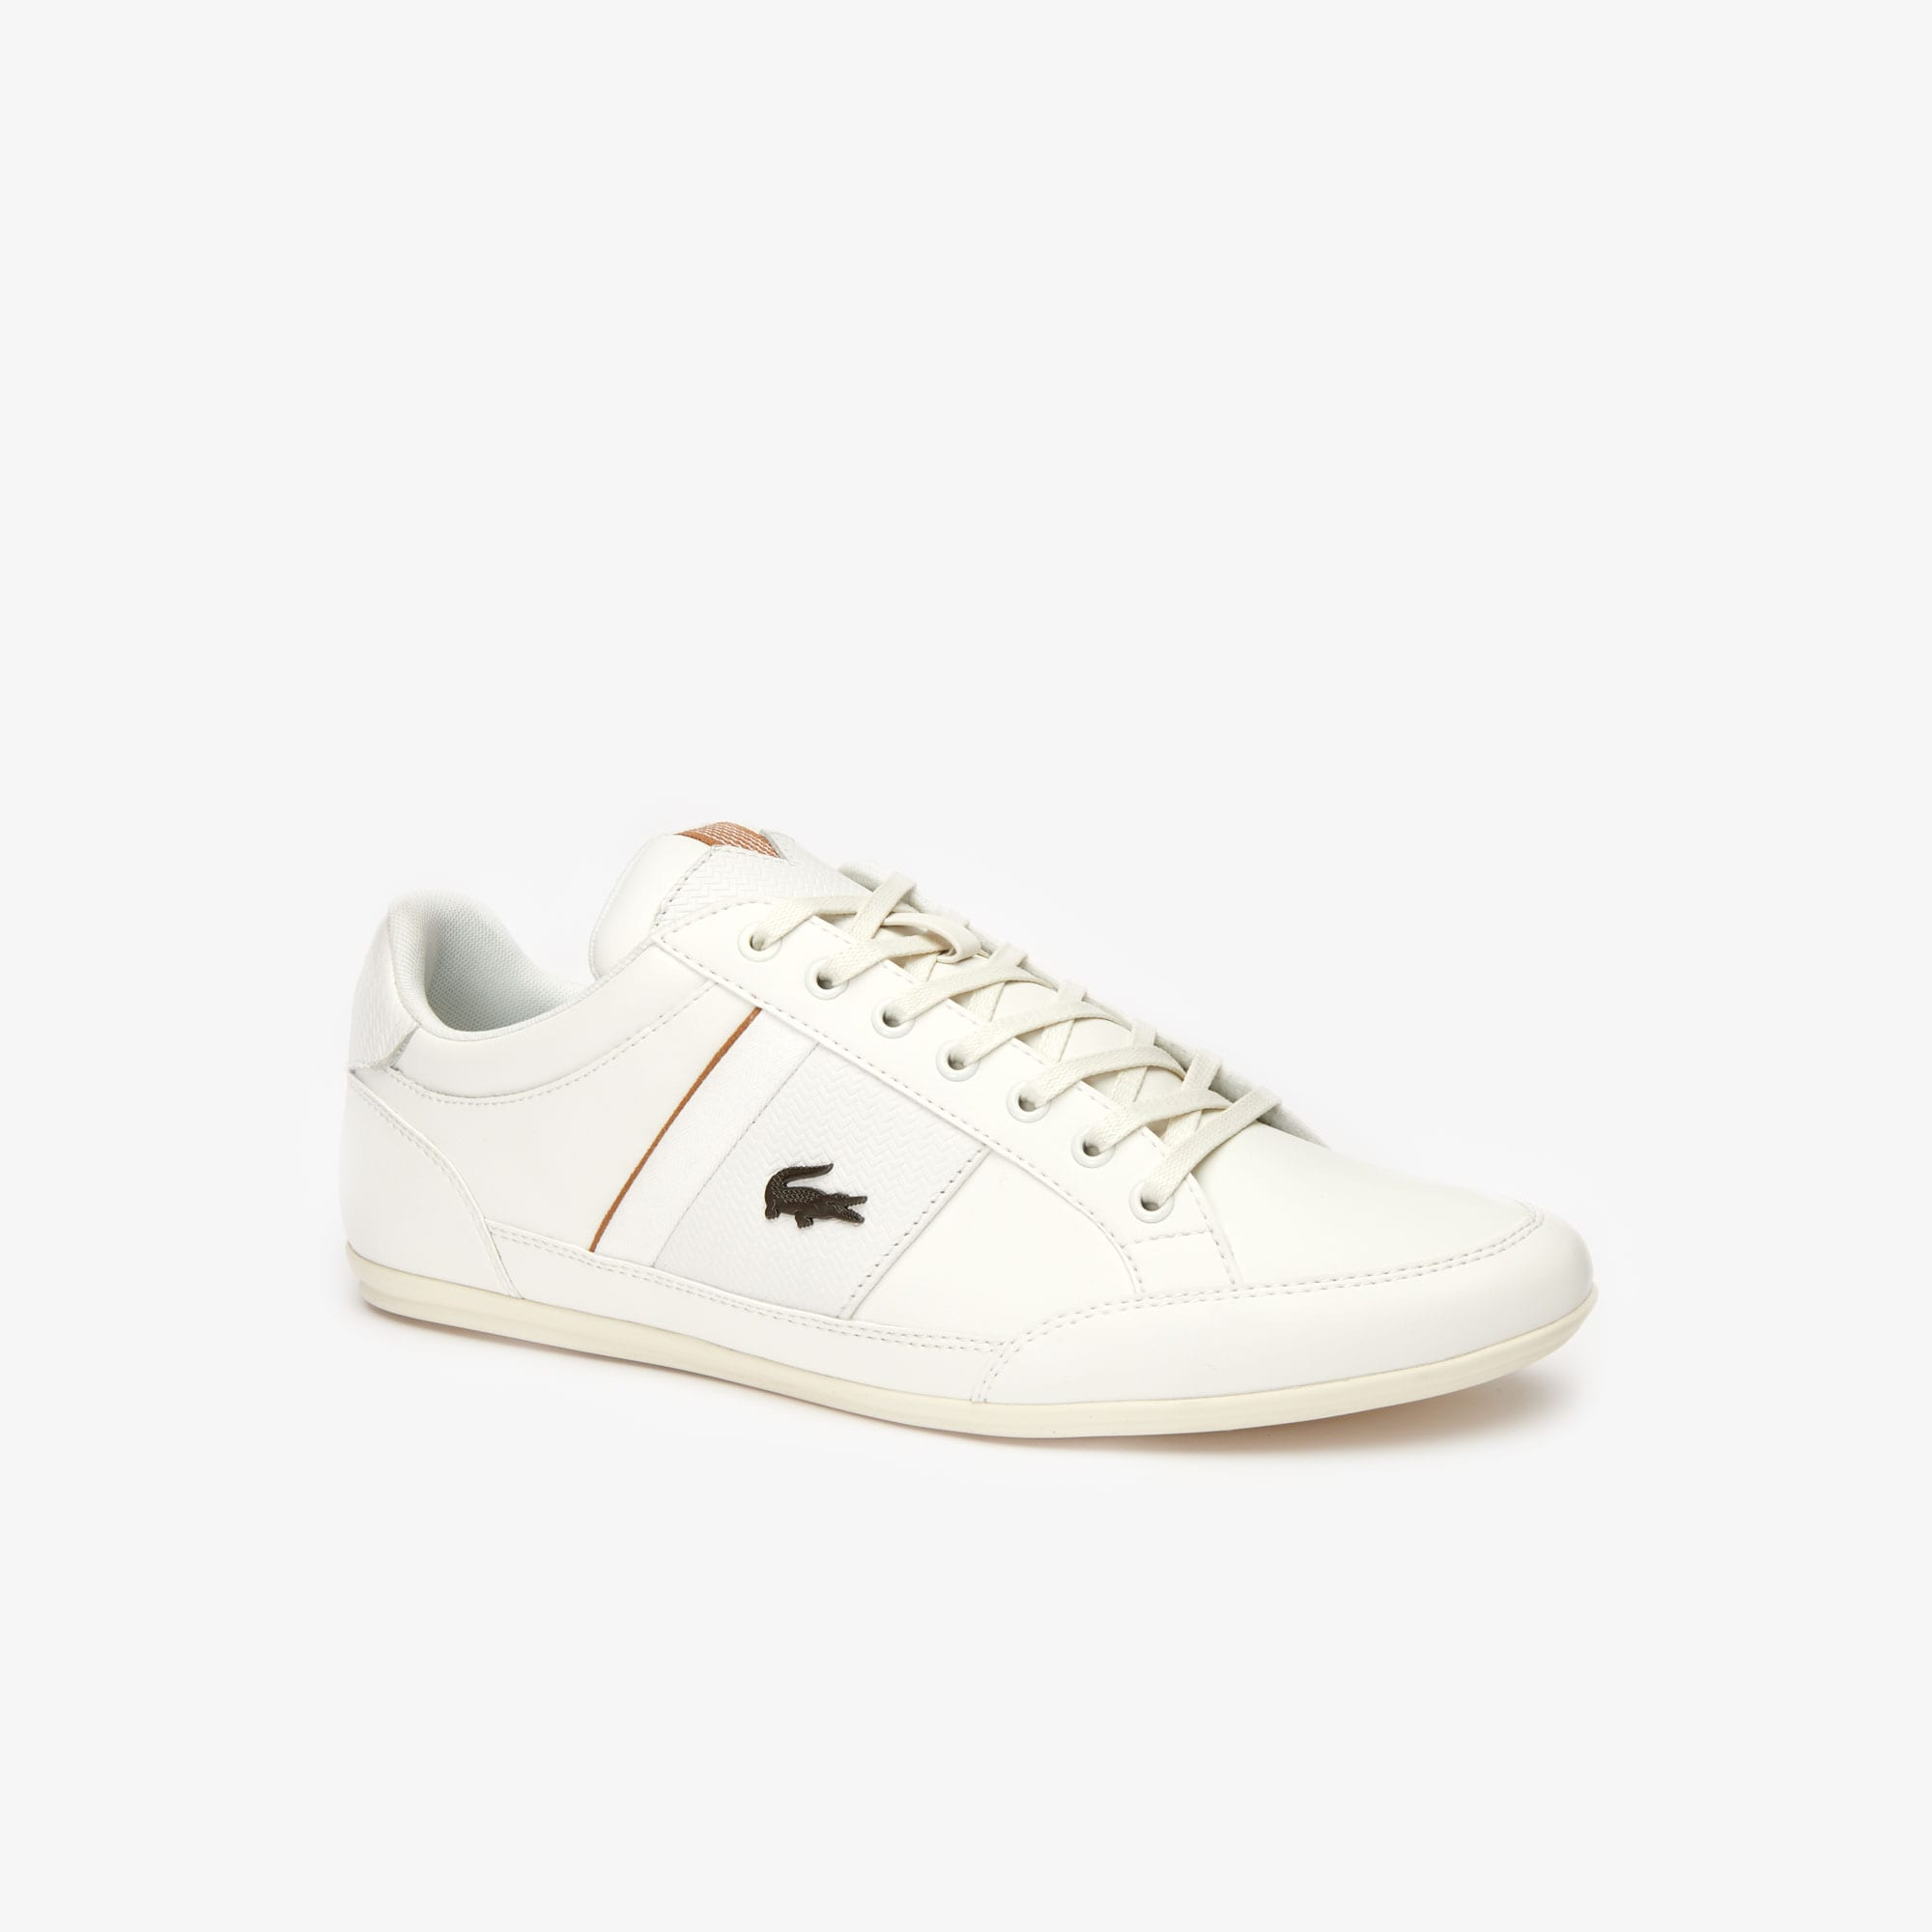 1573e679 Lacoste shoes for men: Sneakers, Trainers, Boots | LACOSTE